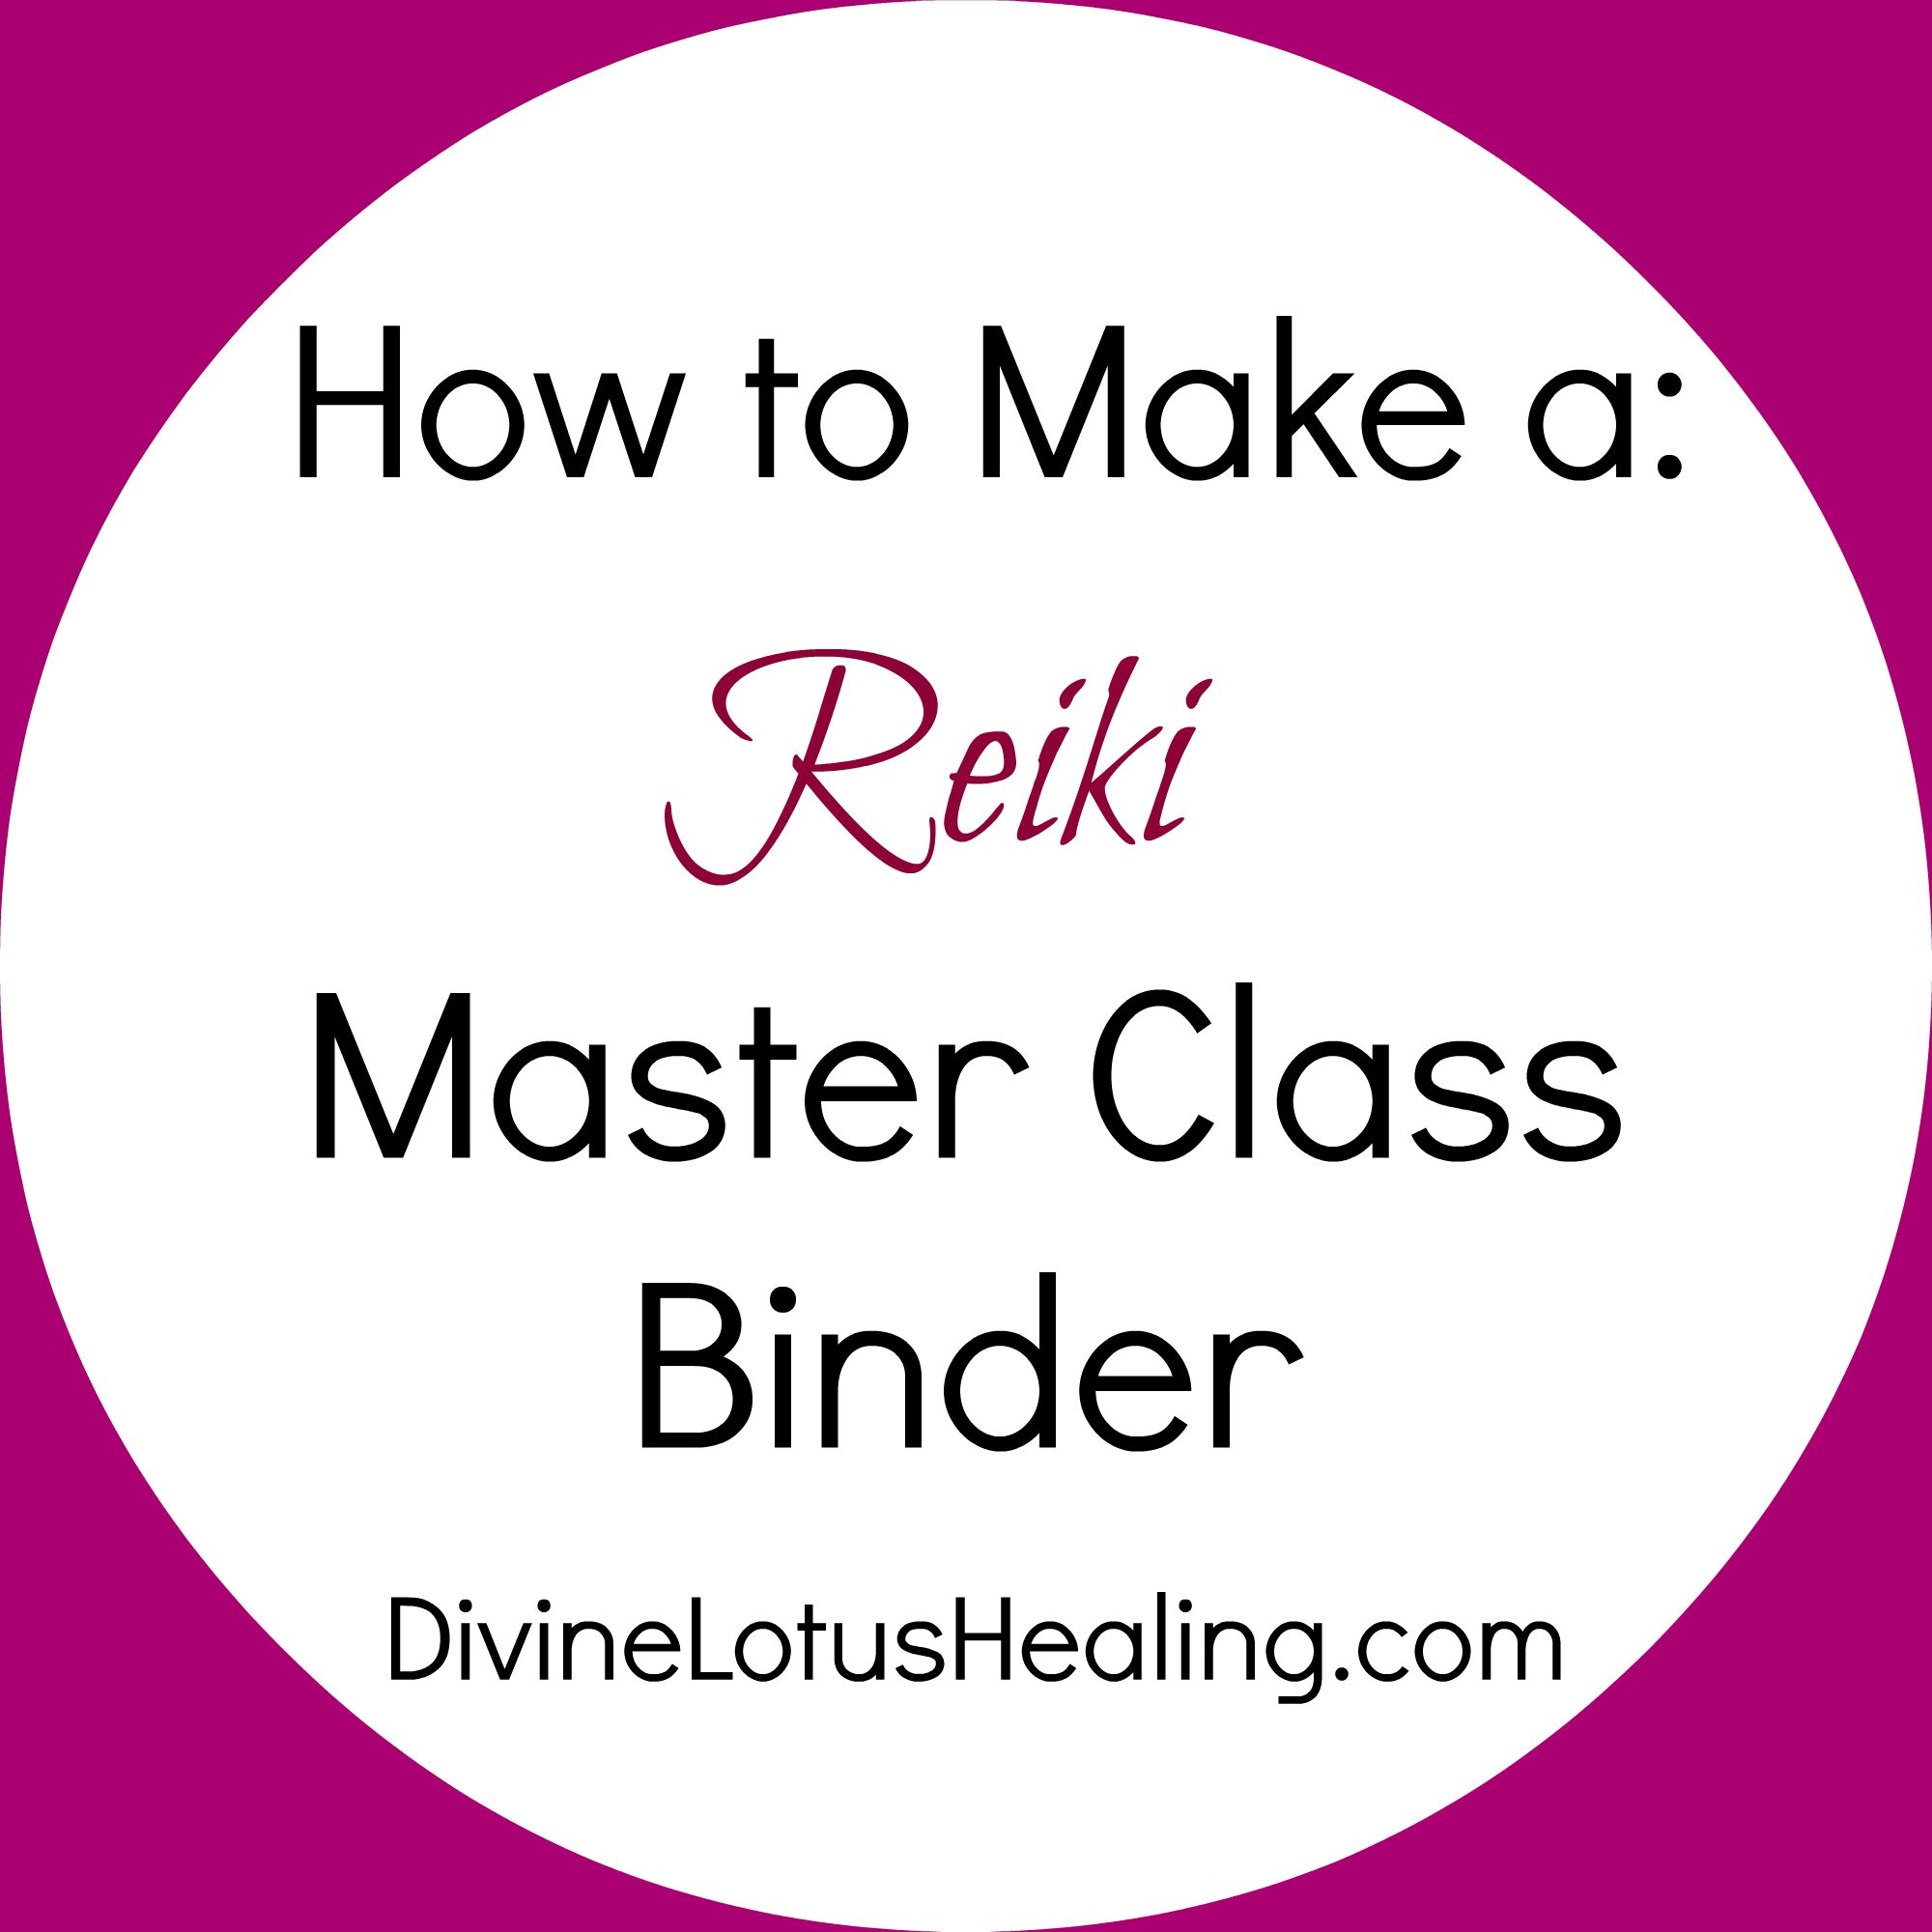 Divine Lotus Healing How To Make a Reiki Master Class Binder